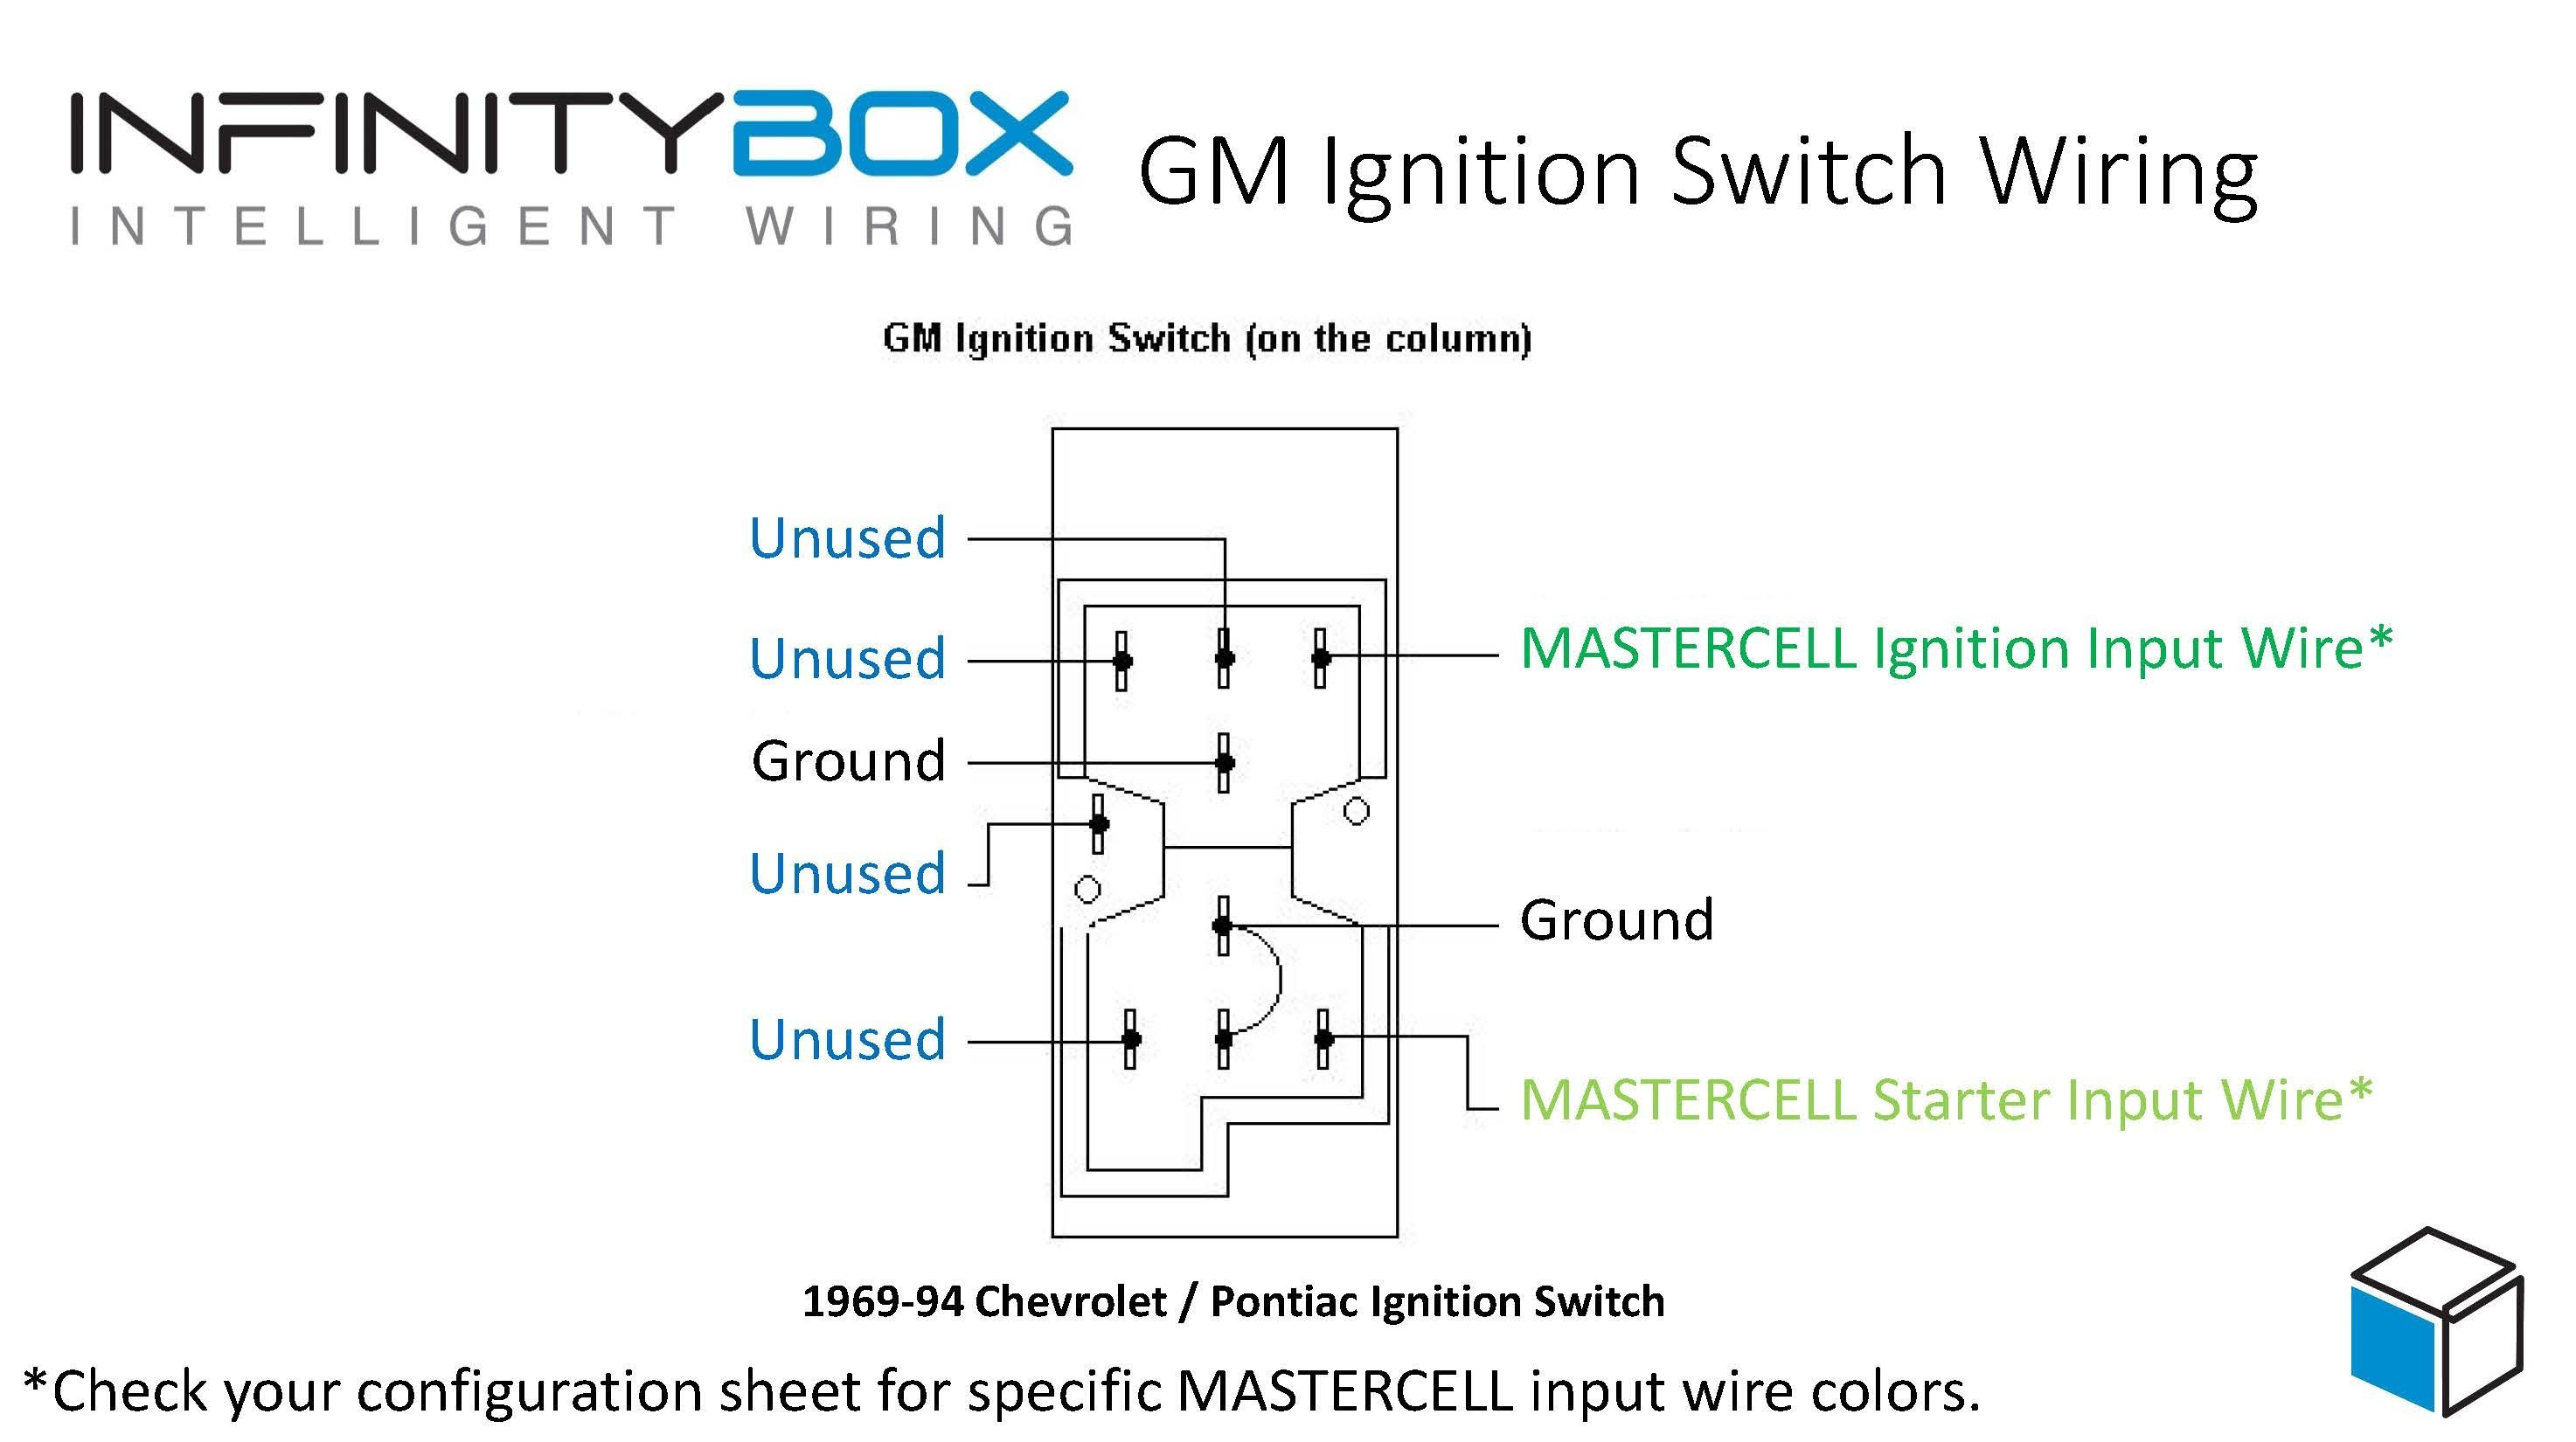 Gm Column Ignition Switch Wiring Diagram Valid Wiring Diagram For - Universal Ignition Switch Wiring Diagram